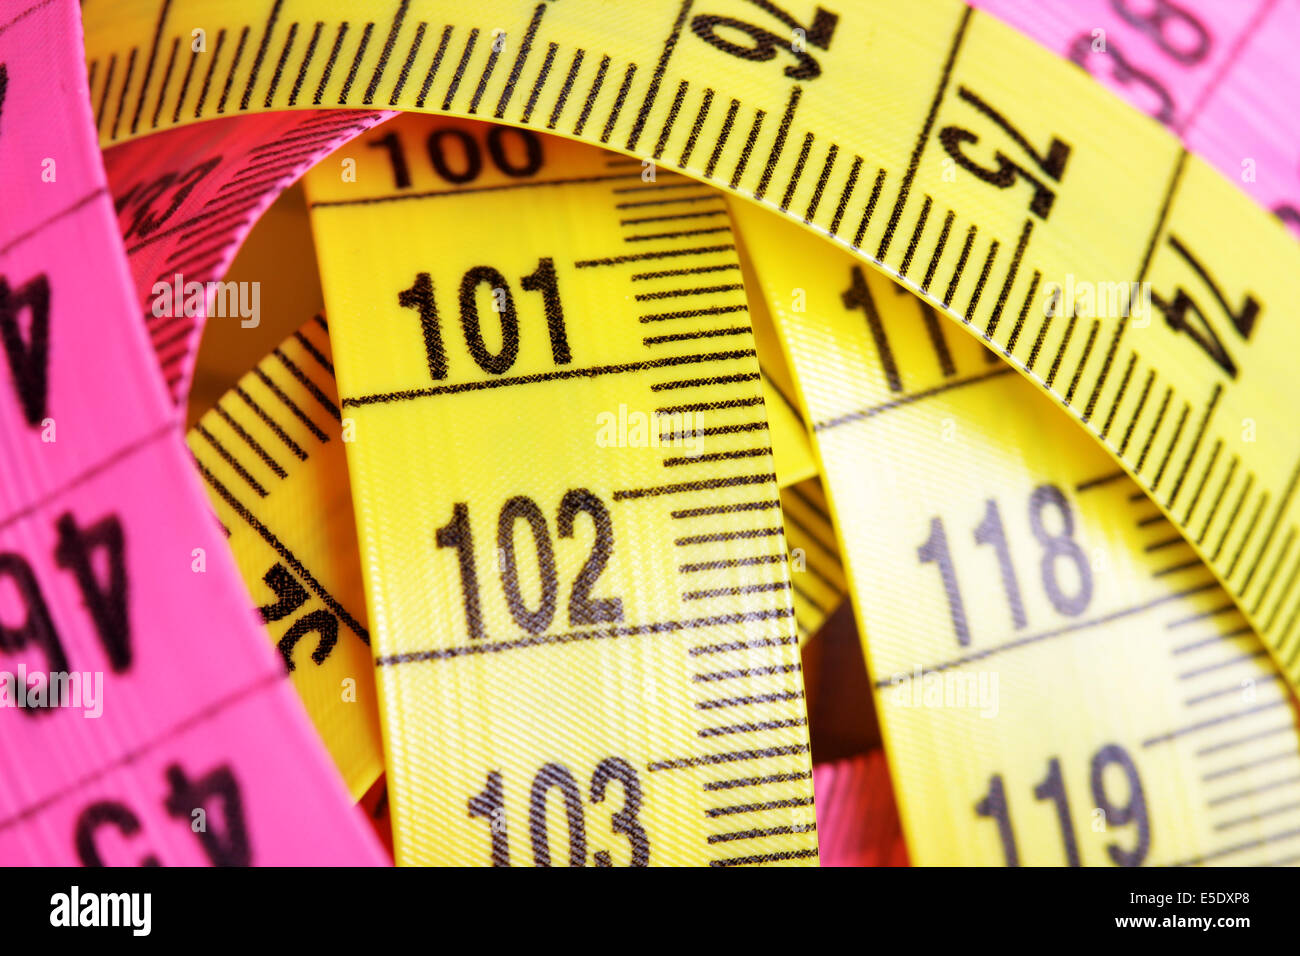 Yellow and pink measuring tapes close up Stock Photo